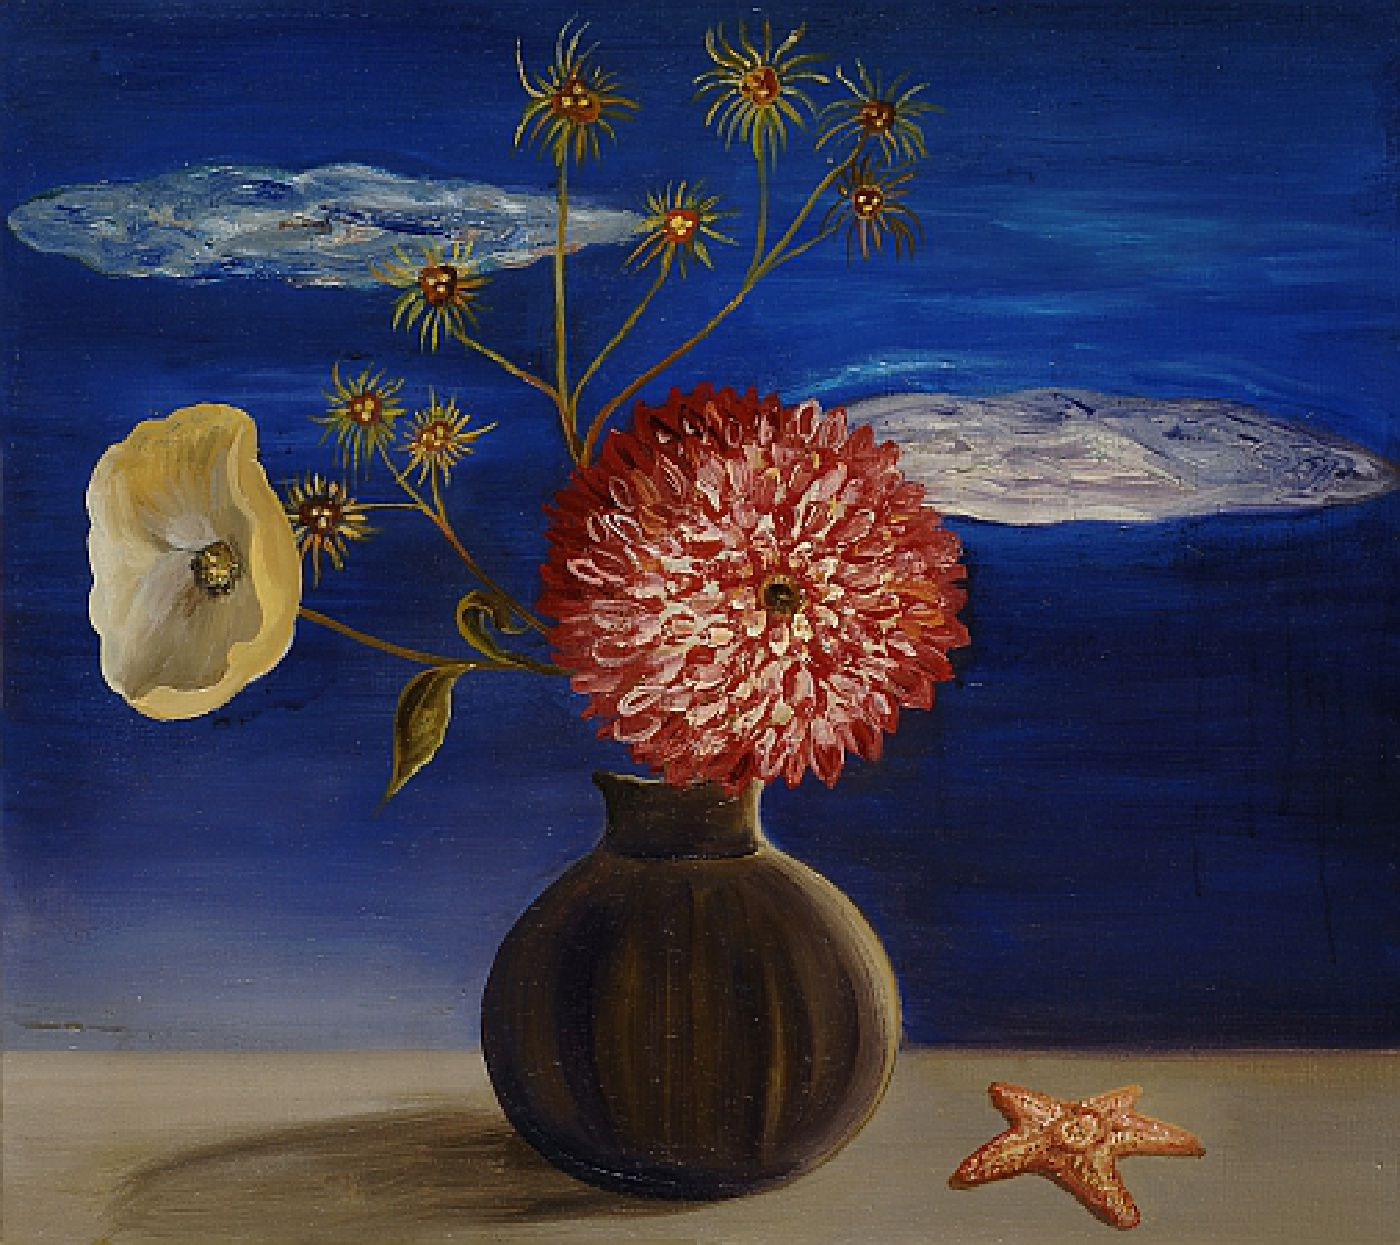 Big Red Flower with Very Blue Sky - Oil on linen